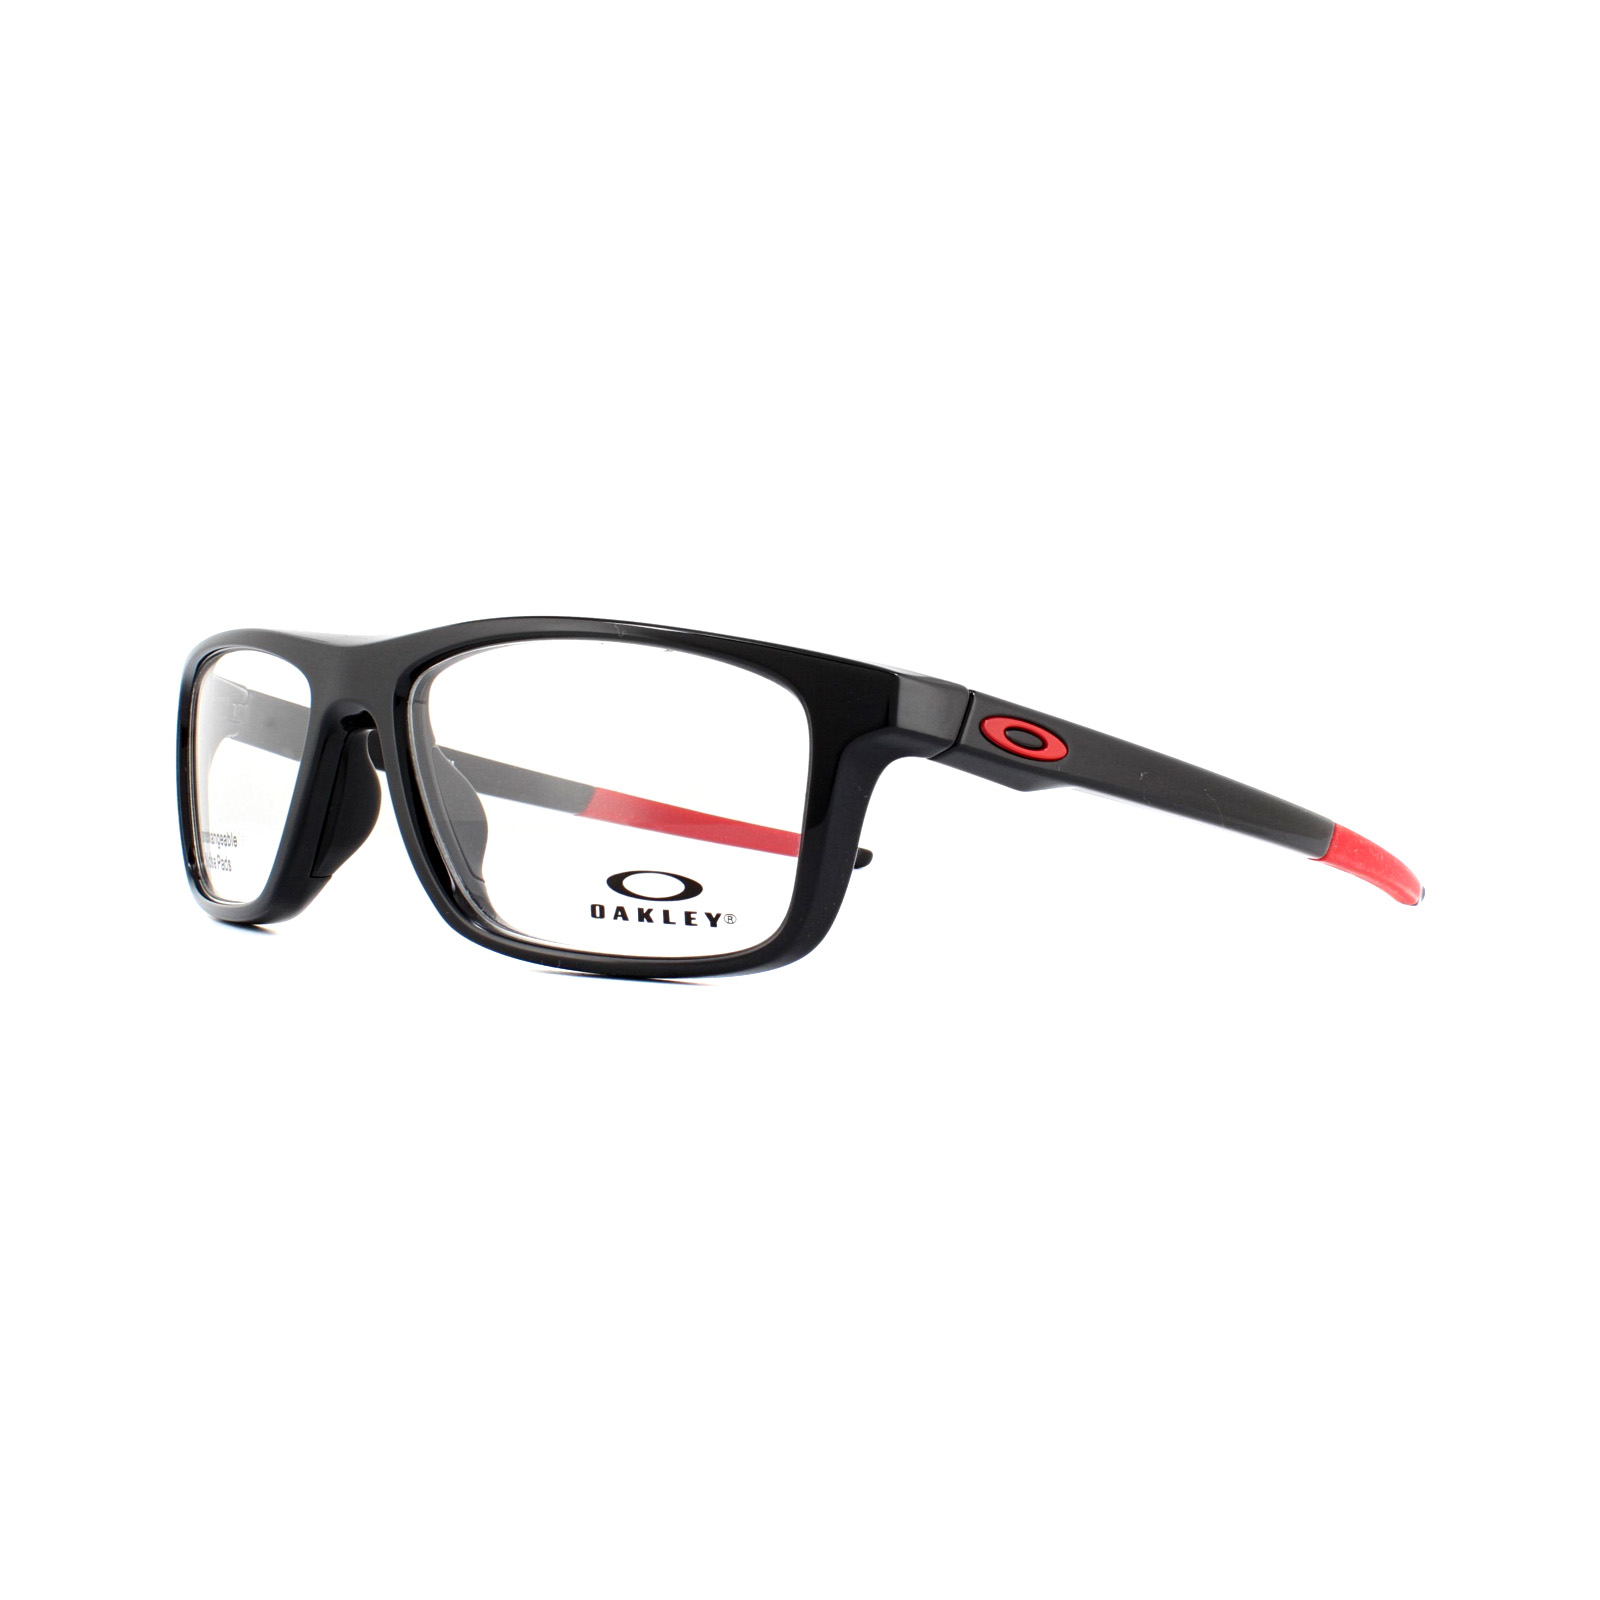 f2ffef98d9 Sentinel Oakley Glasses Frames Pommel OX8127-04 Polished Black 55mm